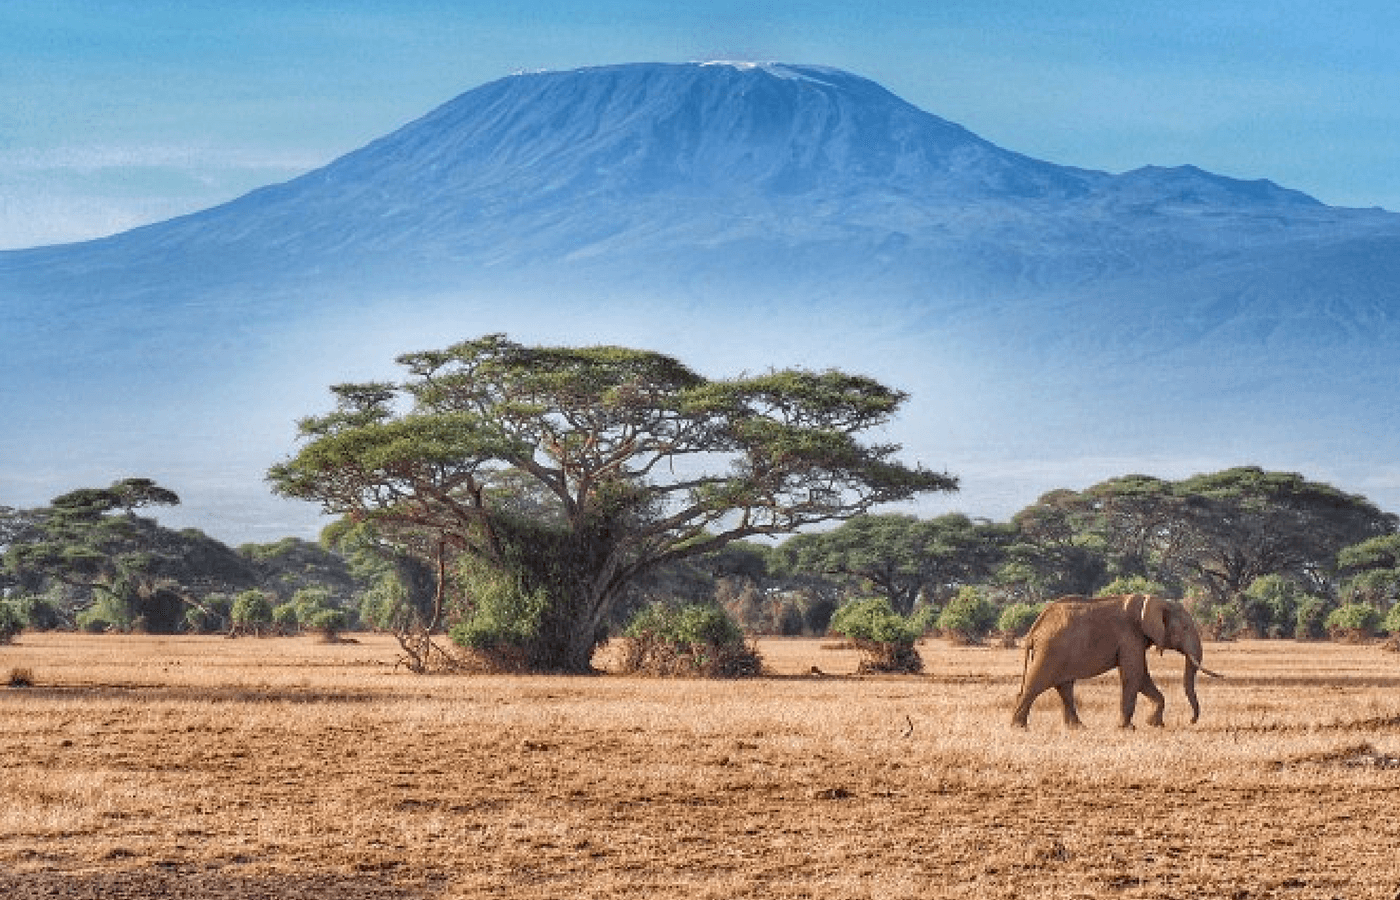 Tipping on Kilimanjaro: Everything You Need to Know